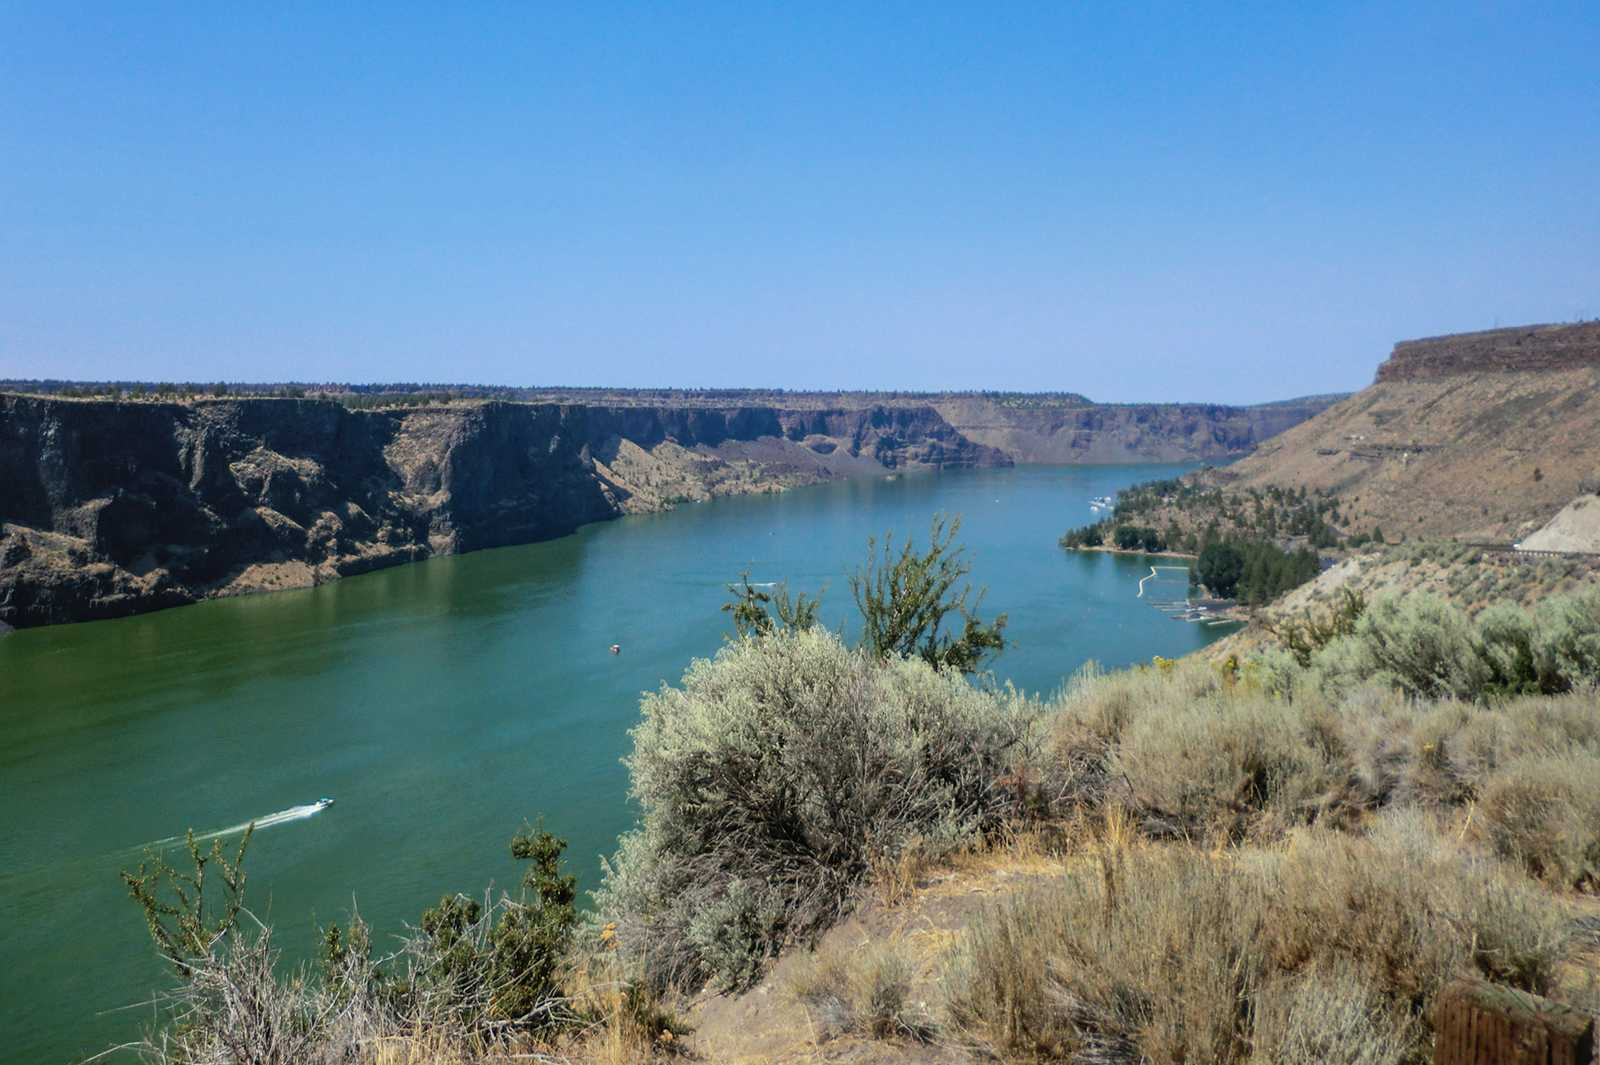 Lake Billy Chinook im Cove Palisades State Park in Oregon